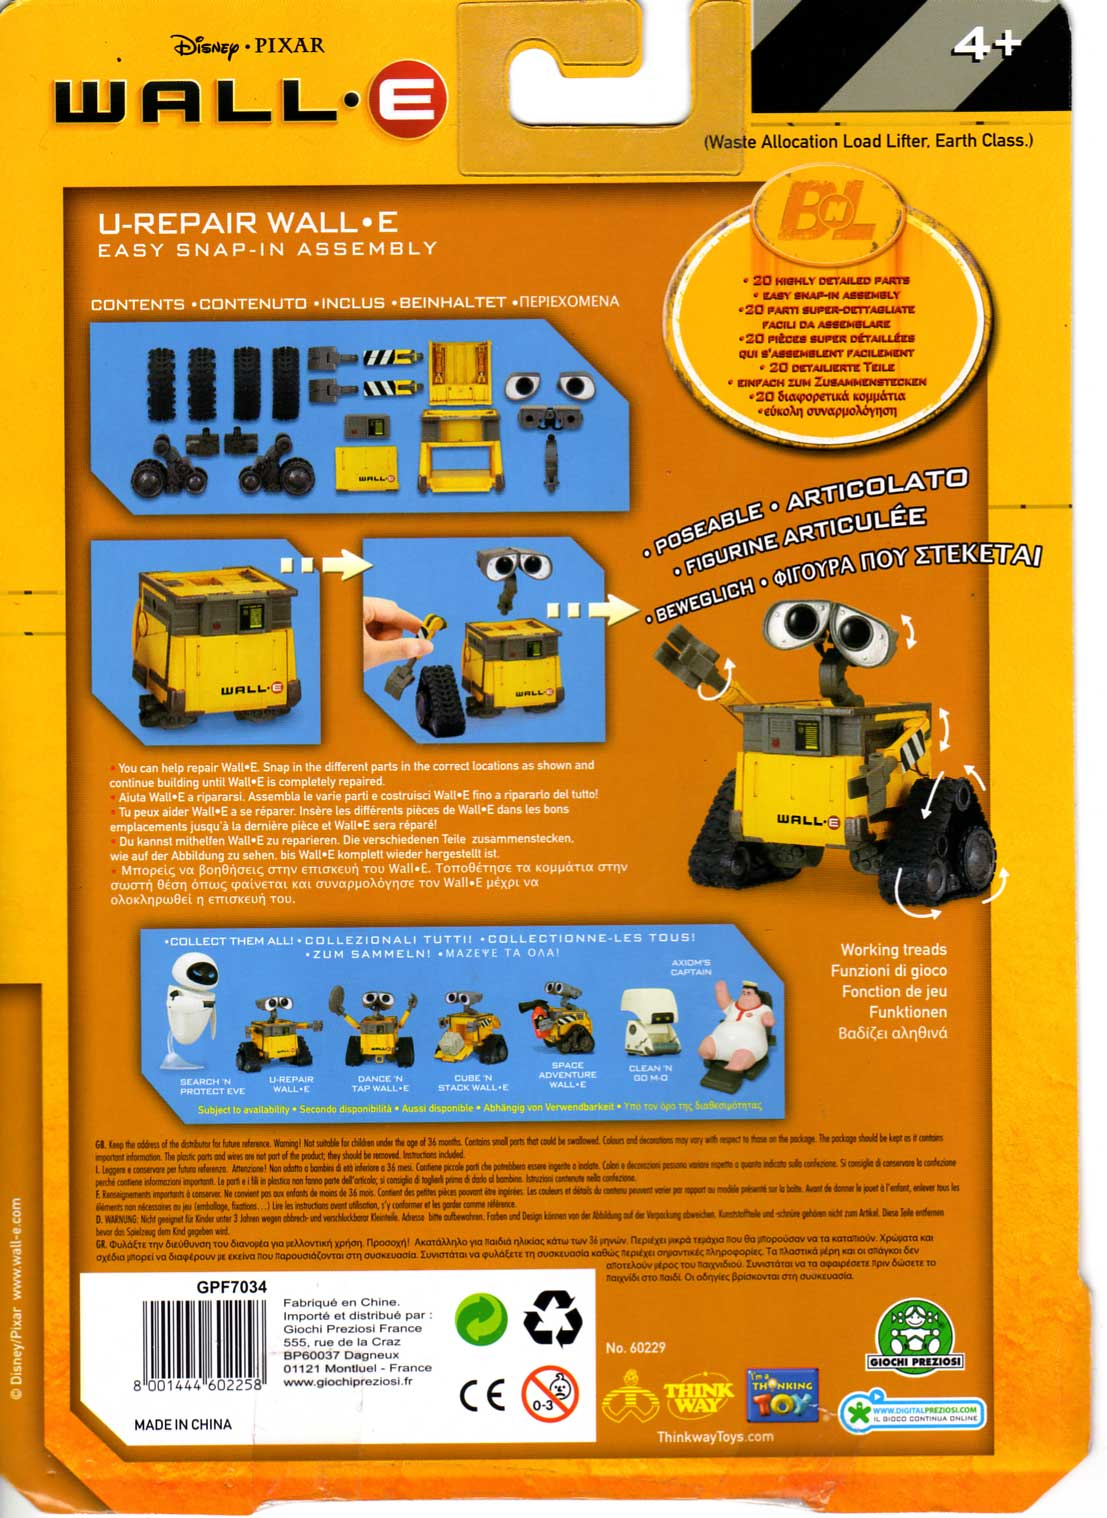 U-Repair Wall-E (2008) Packaging dos